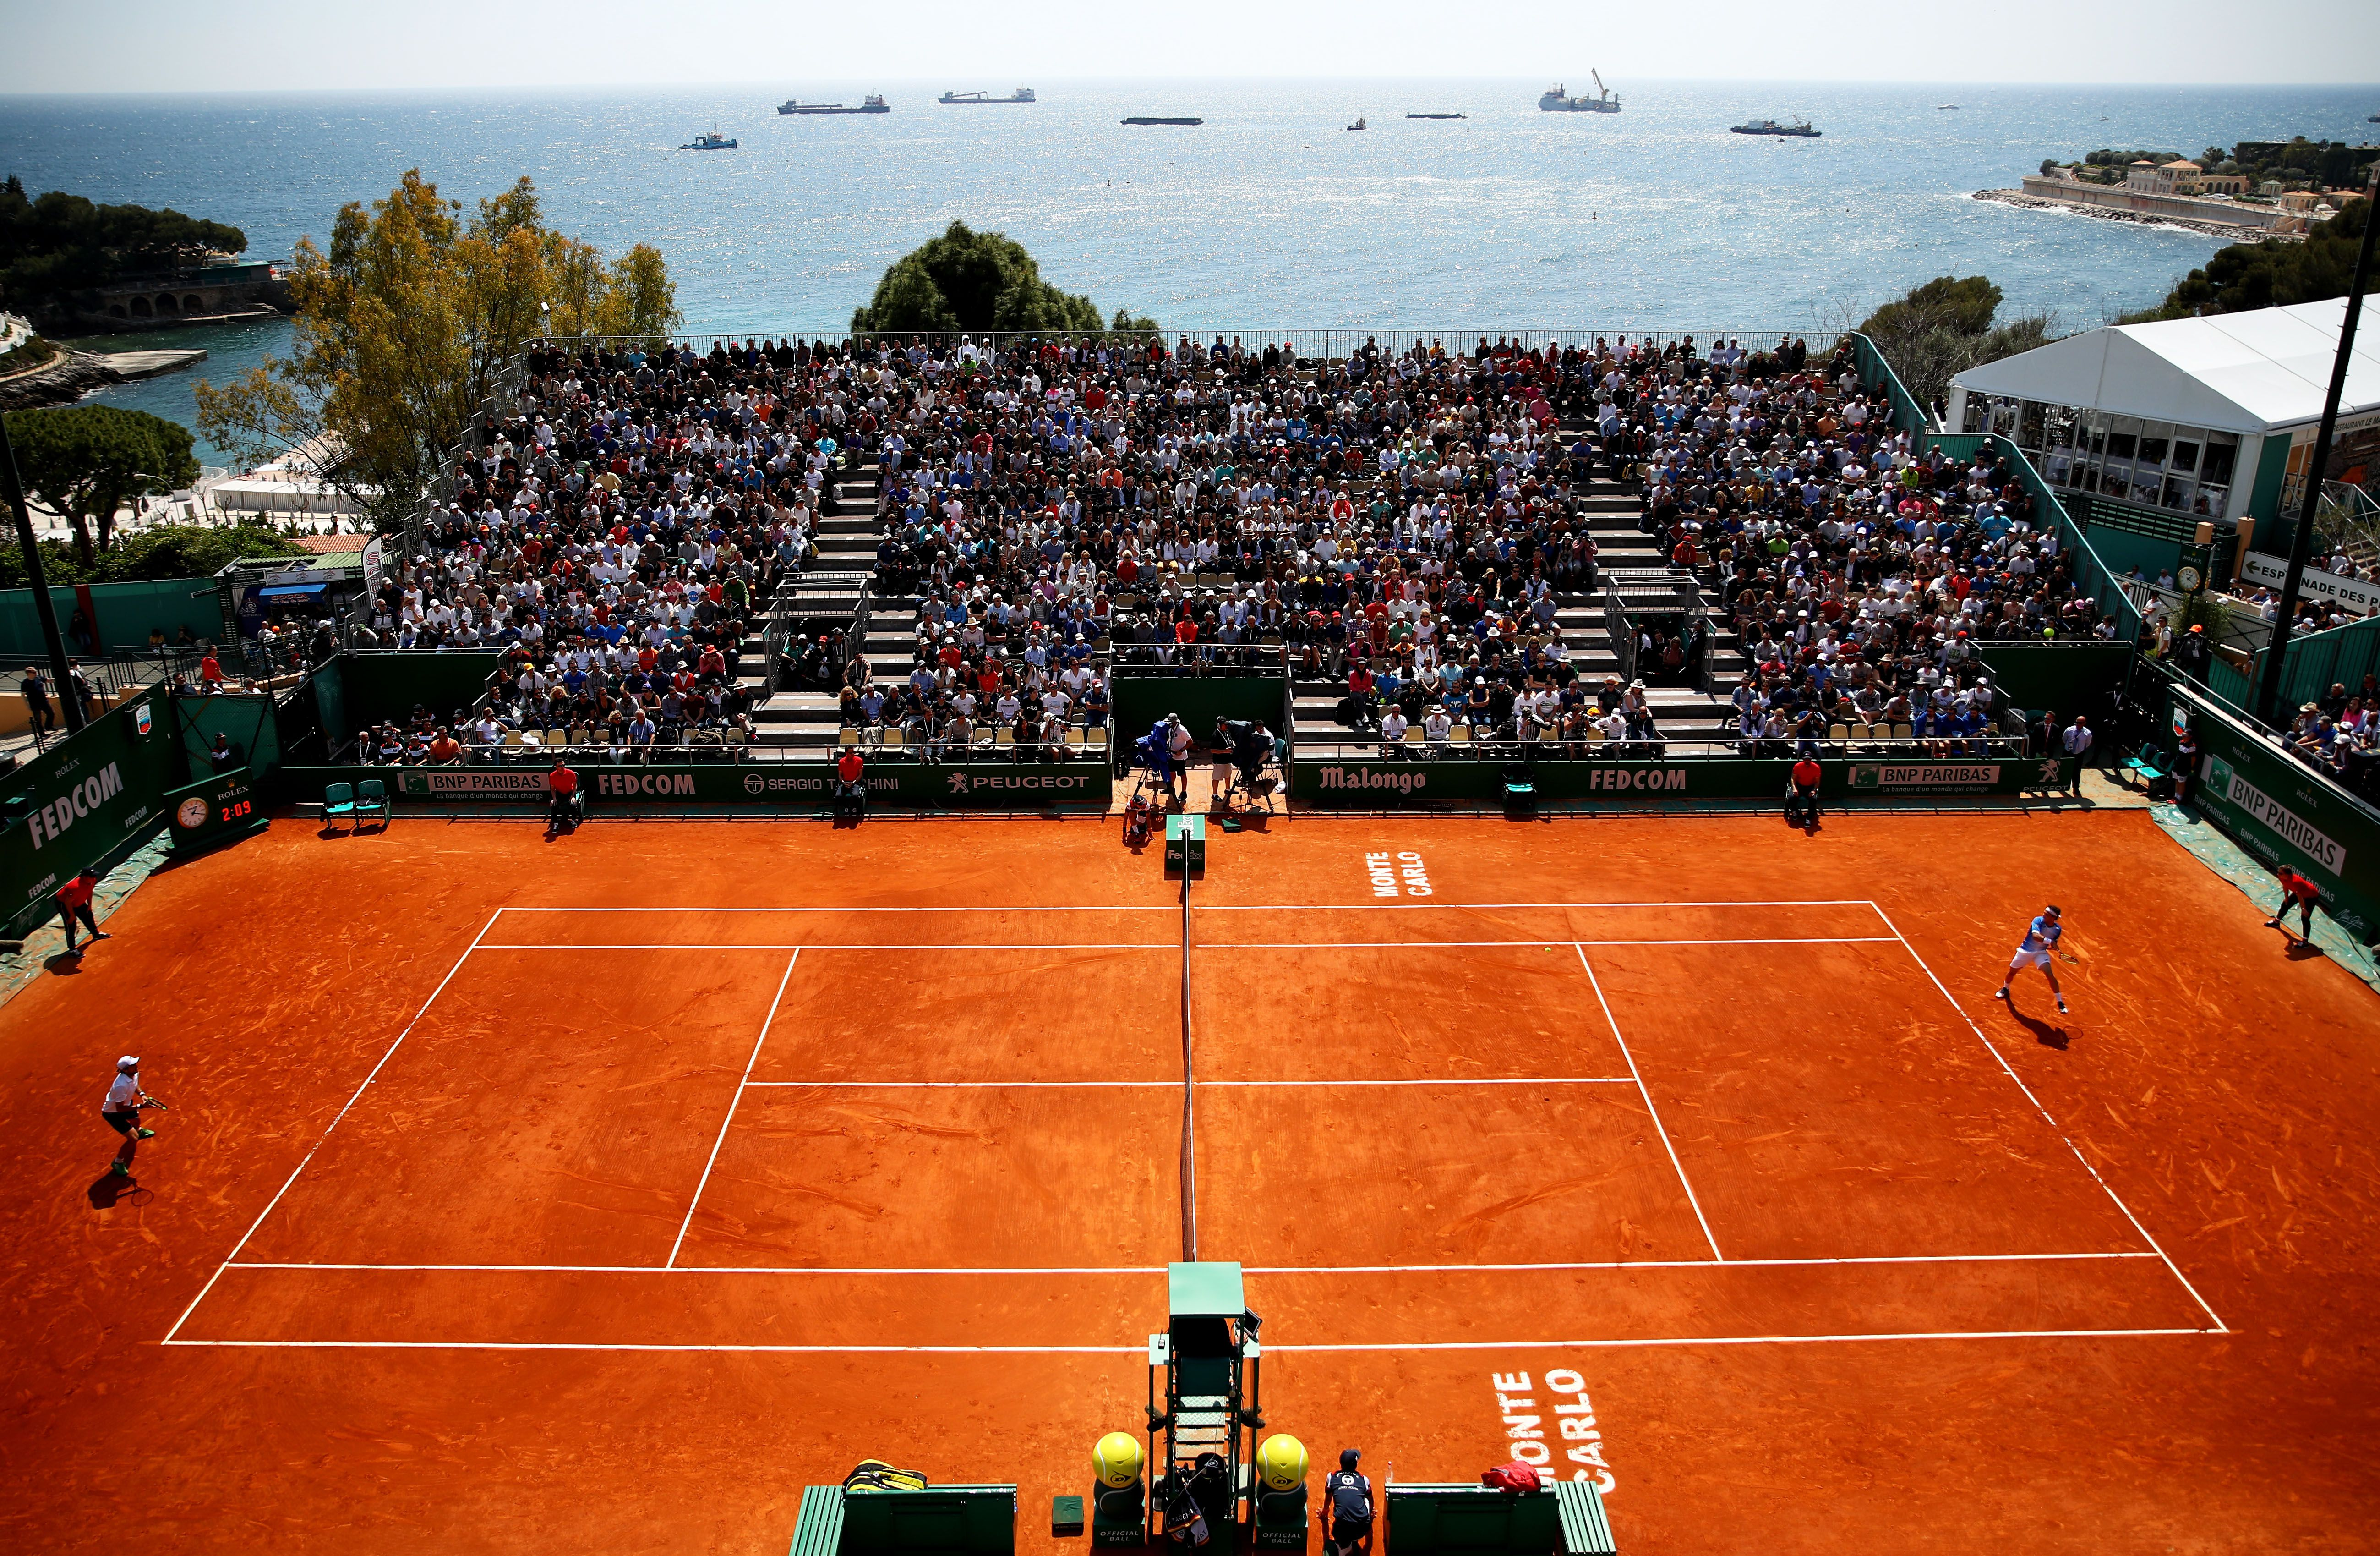 Court view at the Monte Carlo Masters